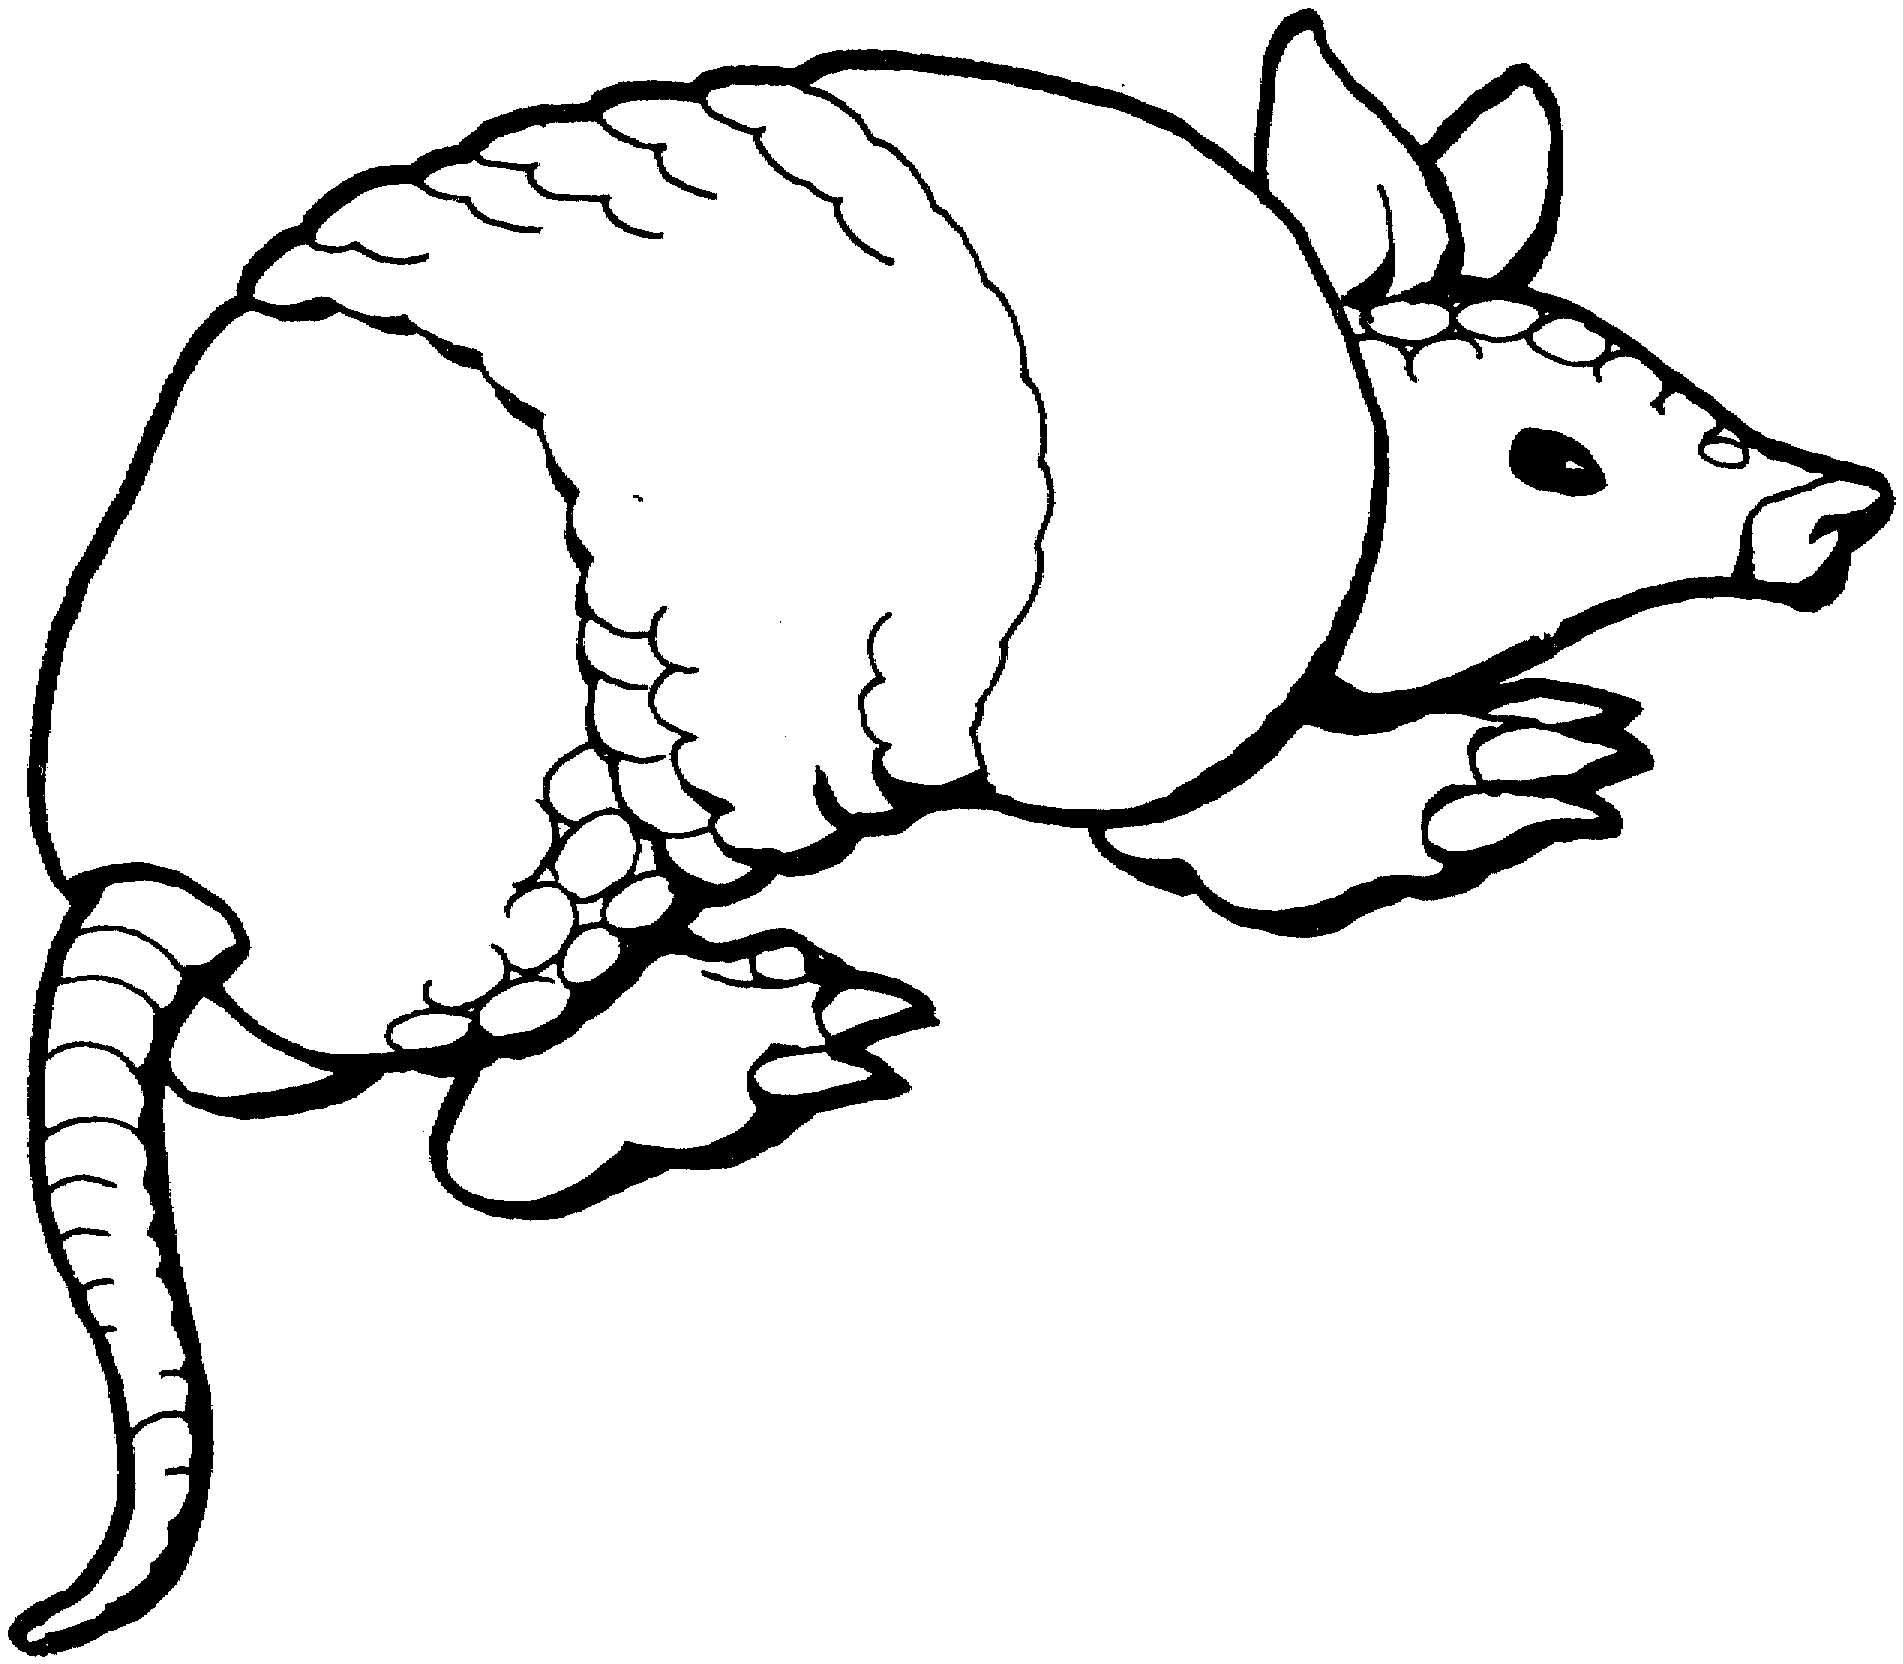 Awesome coloring page collection. Armadillo clipart black and white